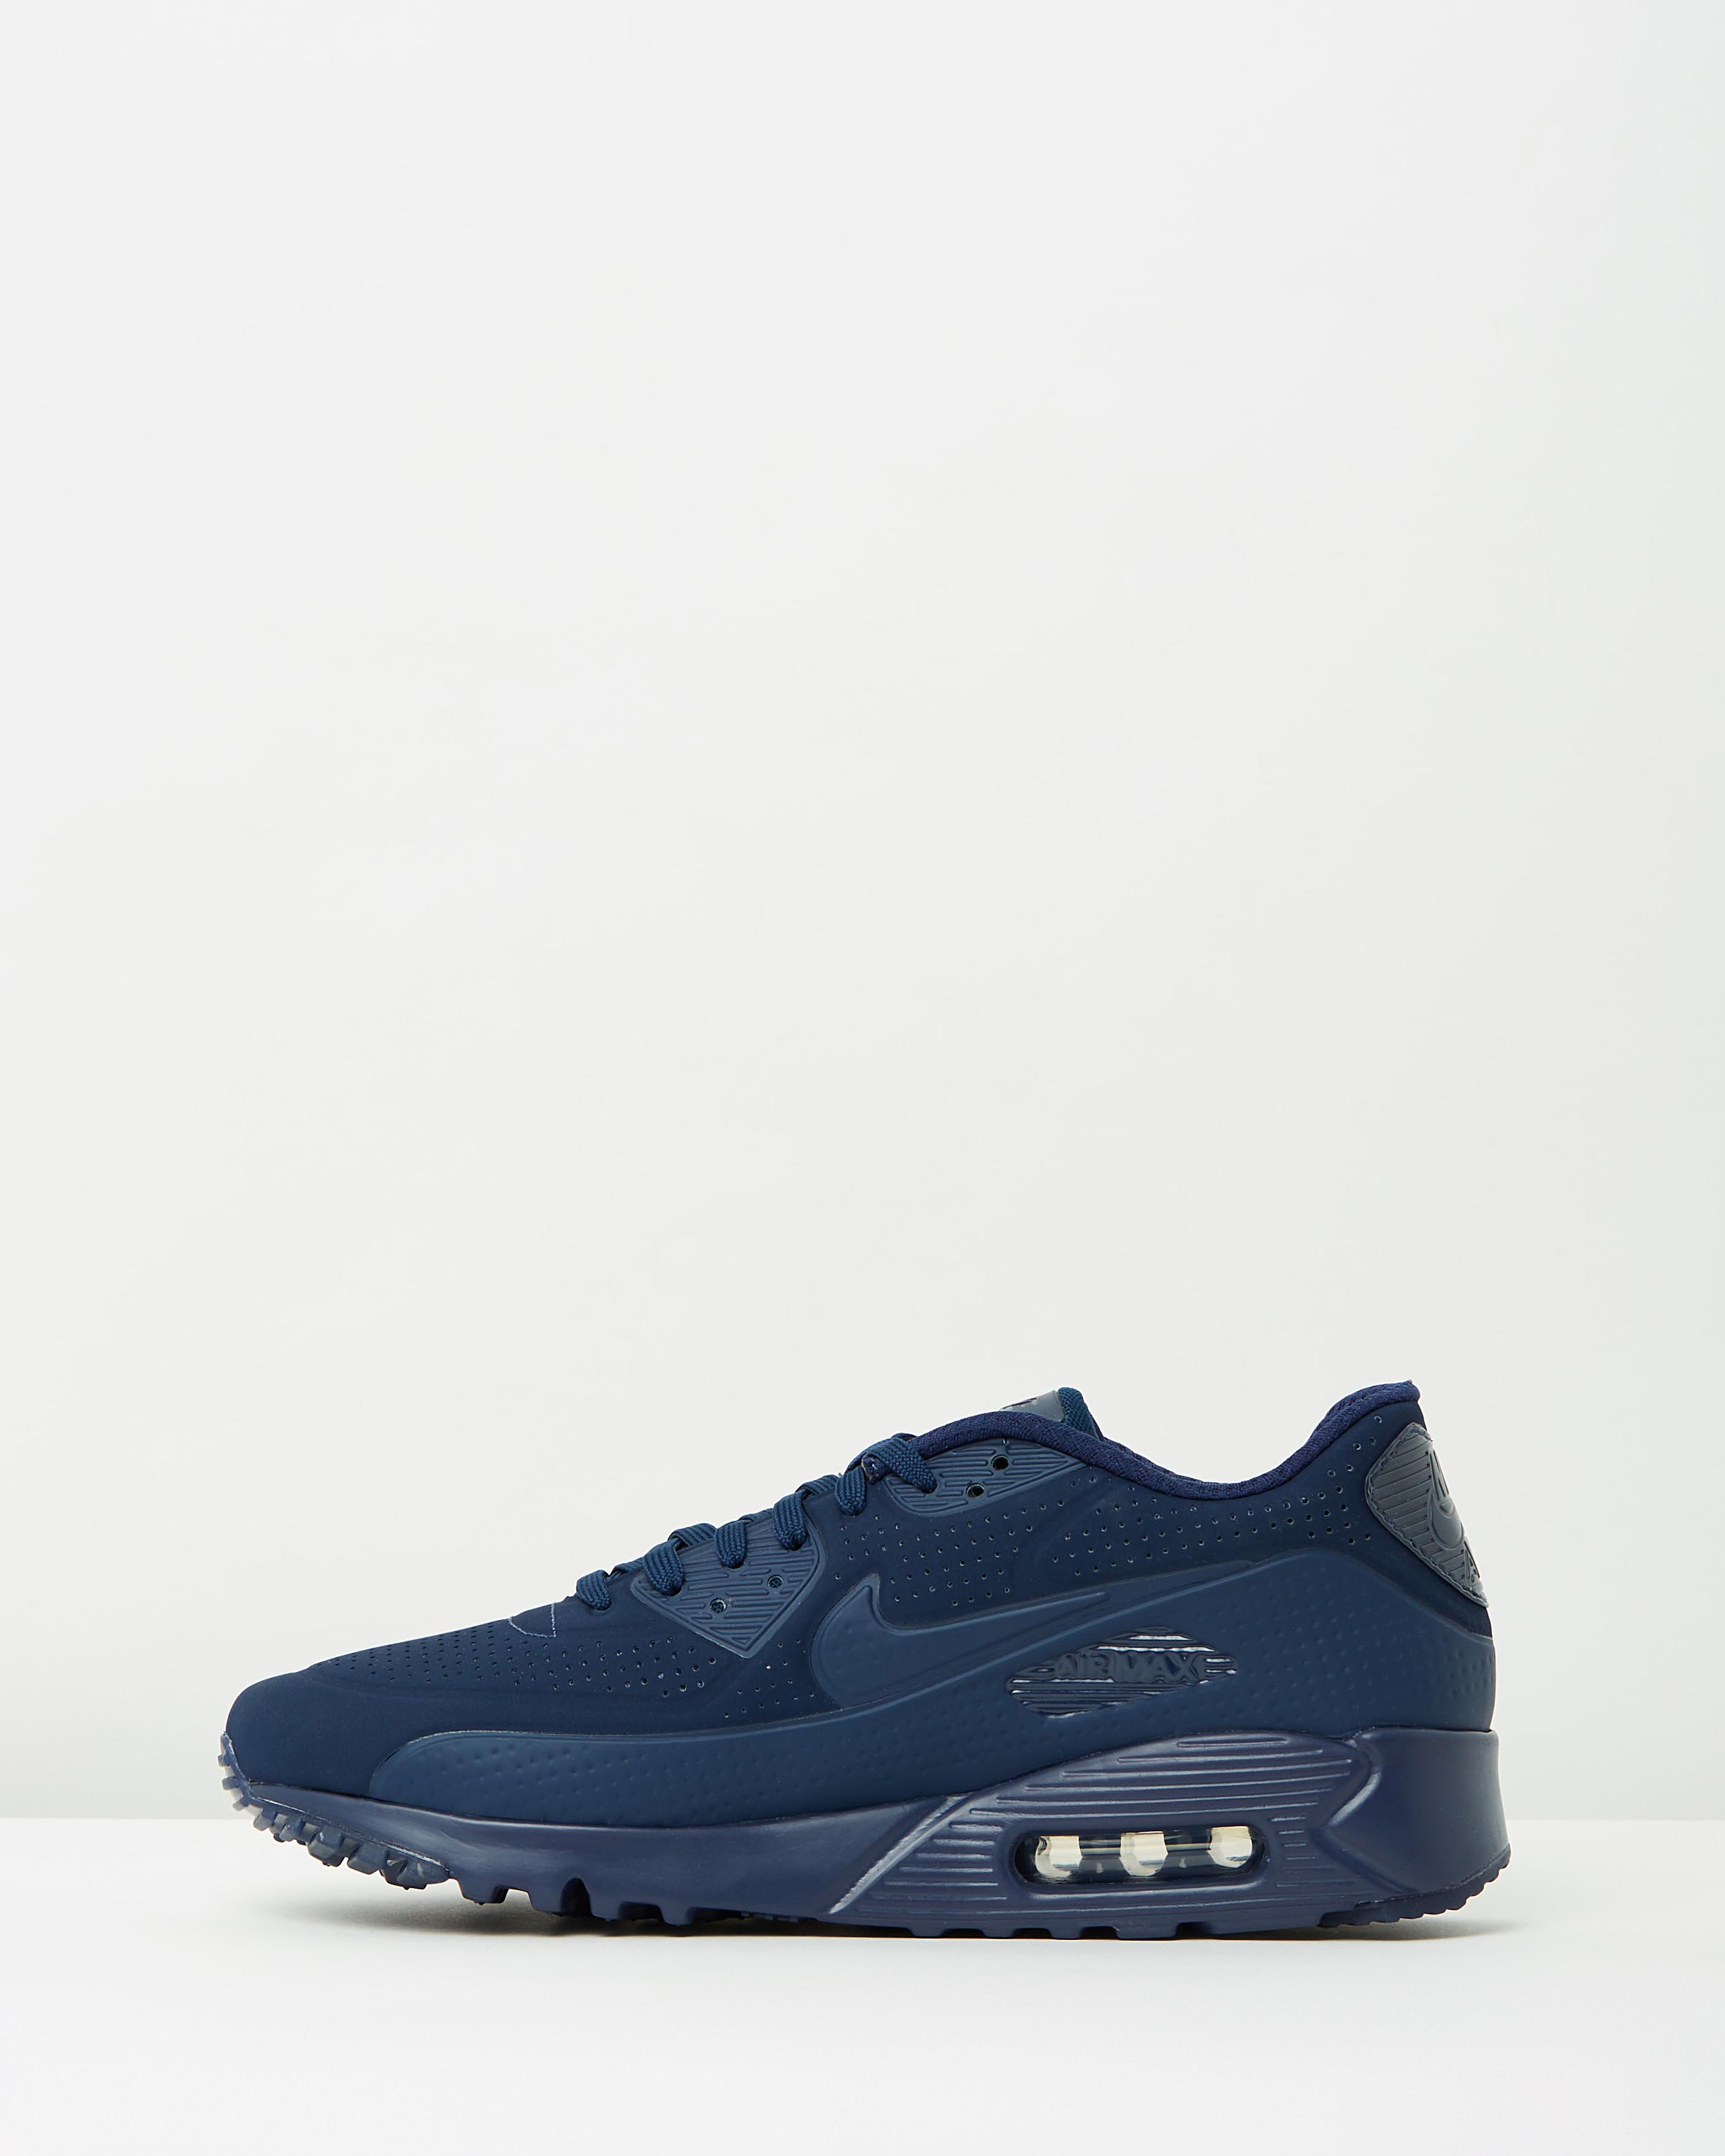 nike air max 90 ultra moire midnight blue sneaker store. Black Bedroom Furniture Sets. Home Design Ideas